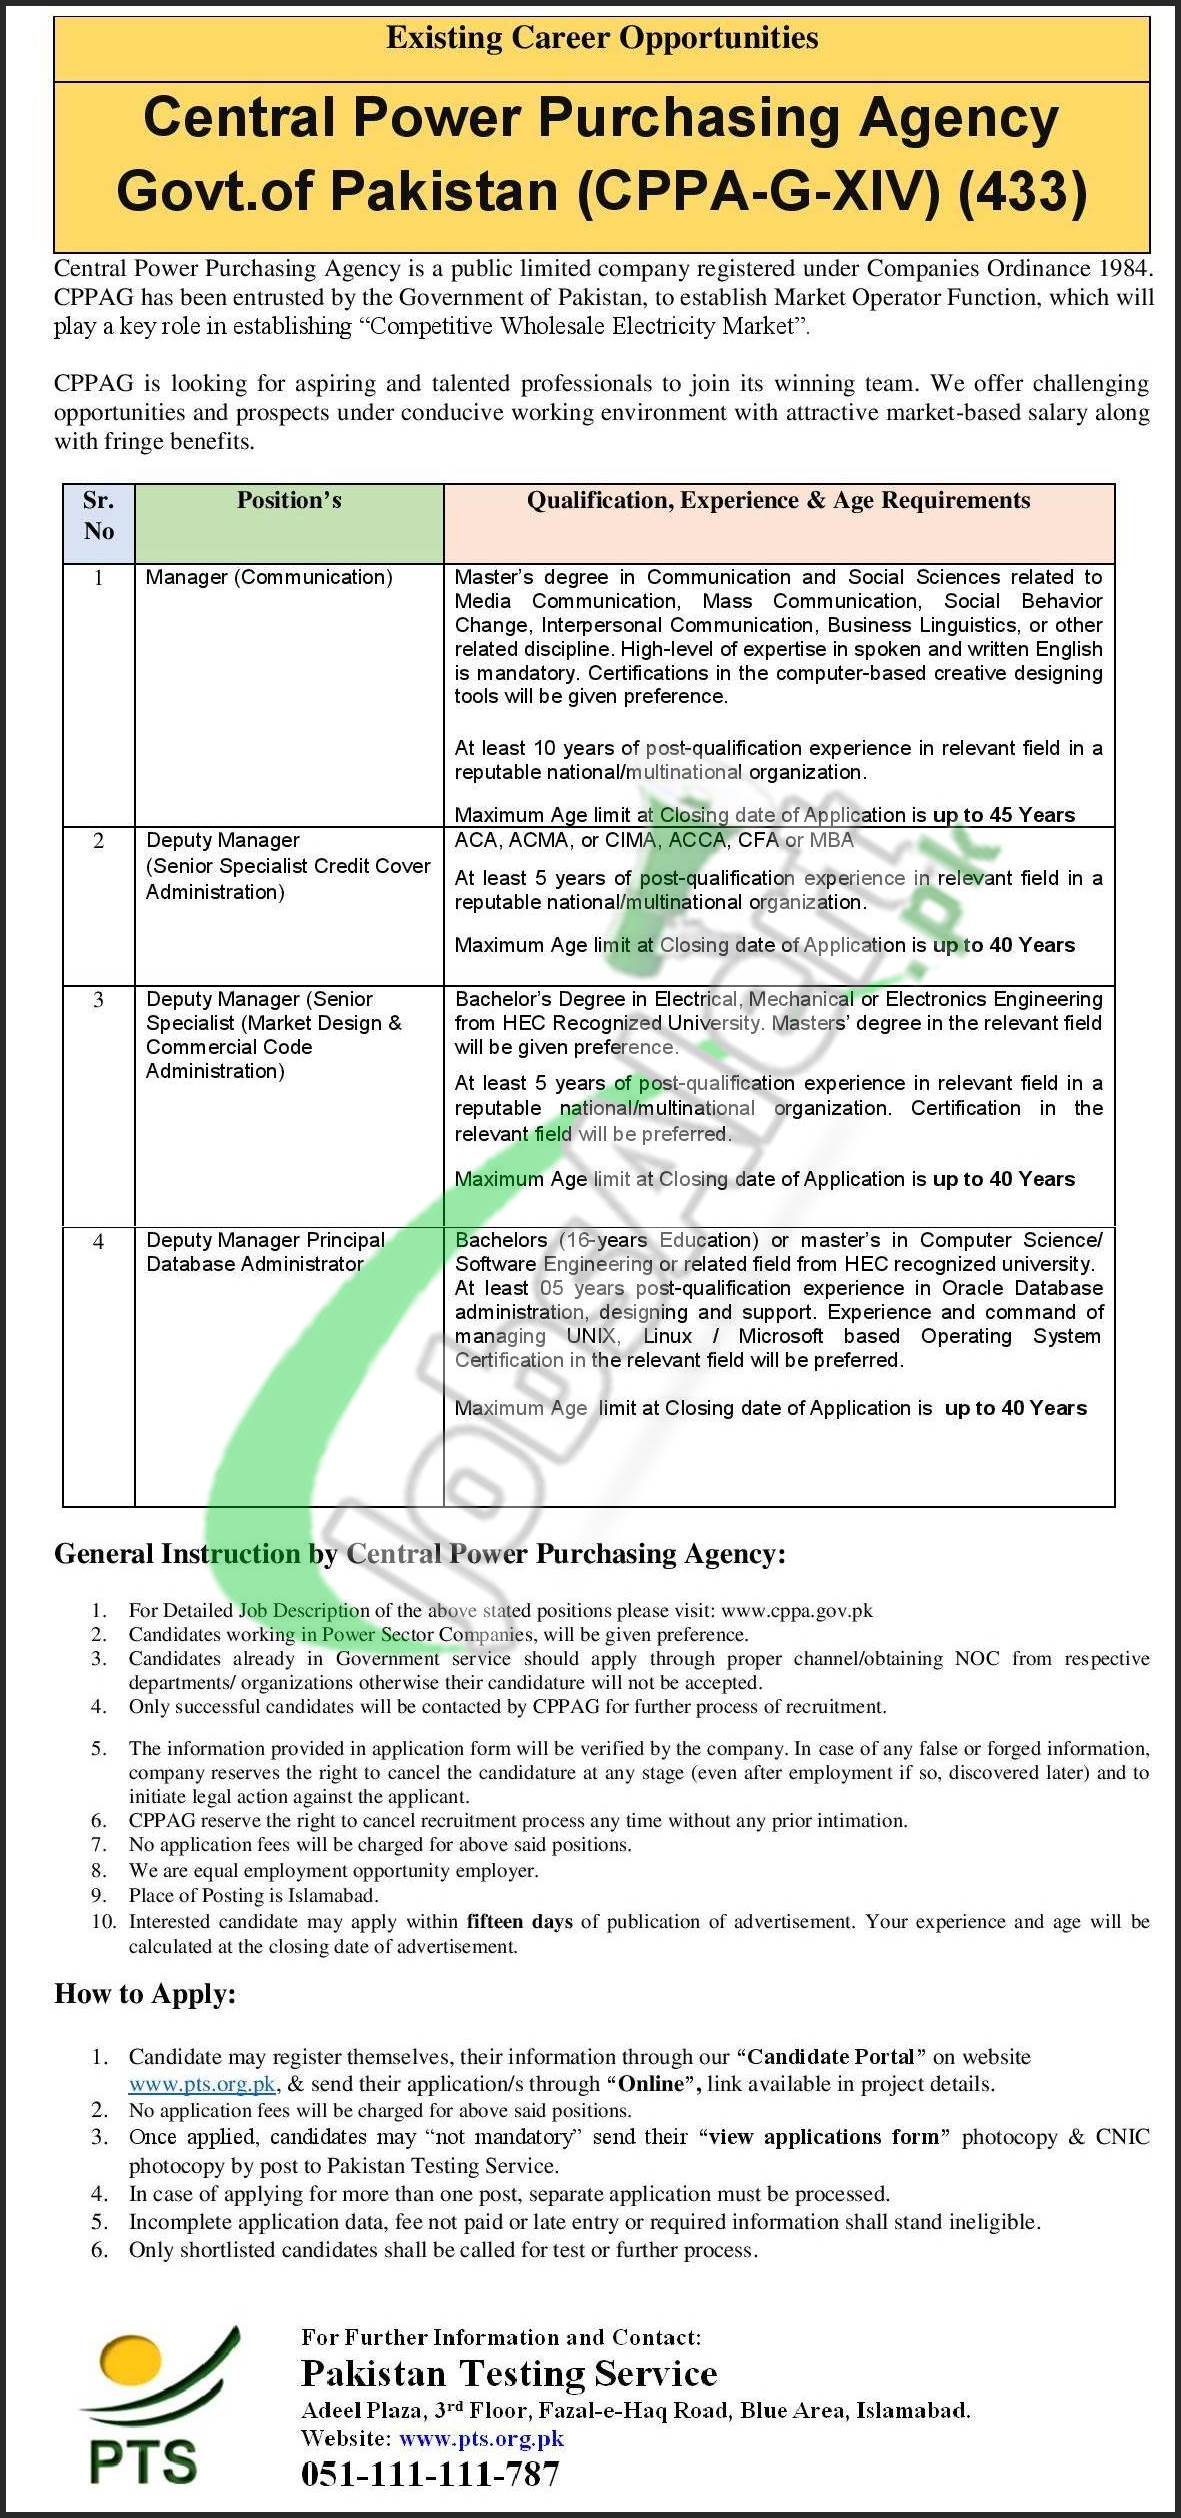 Central Power Purchasing Agency Jobs 2021